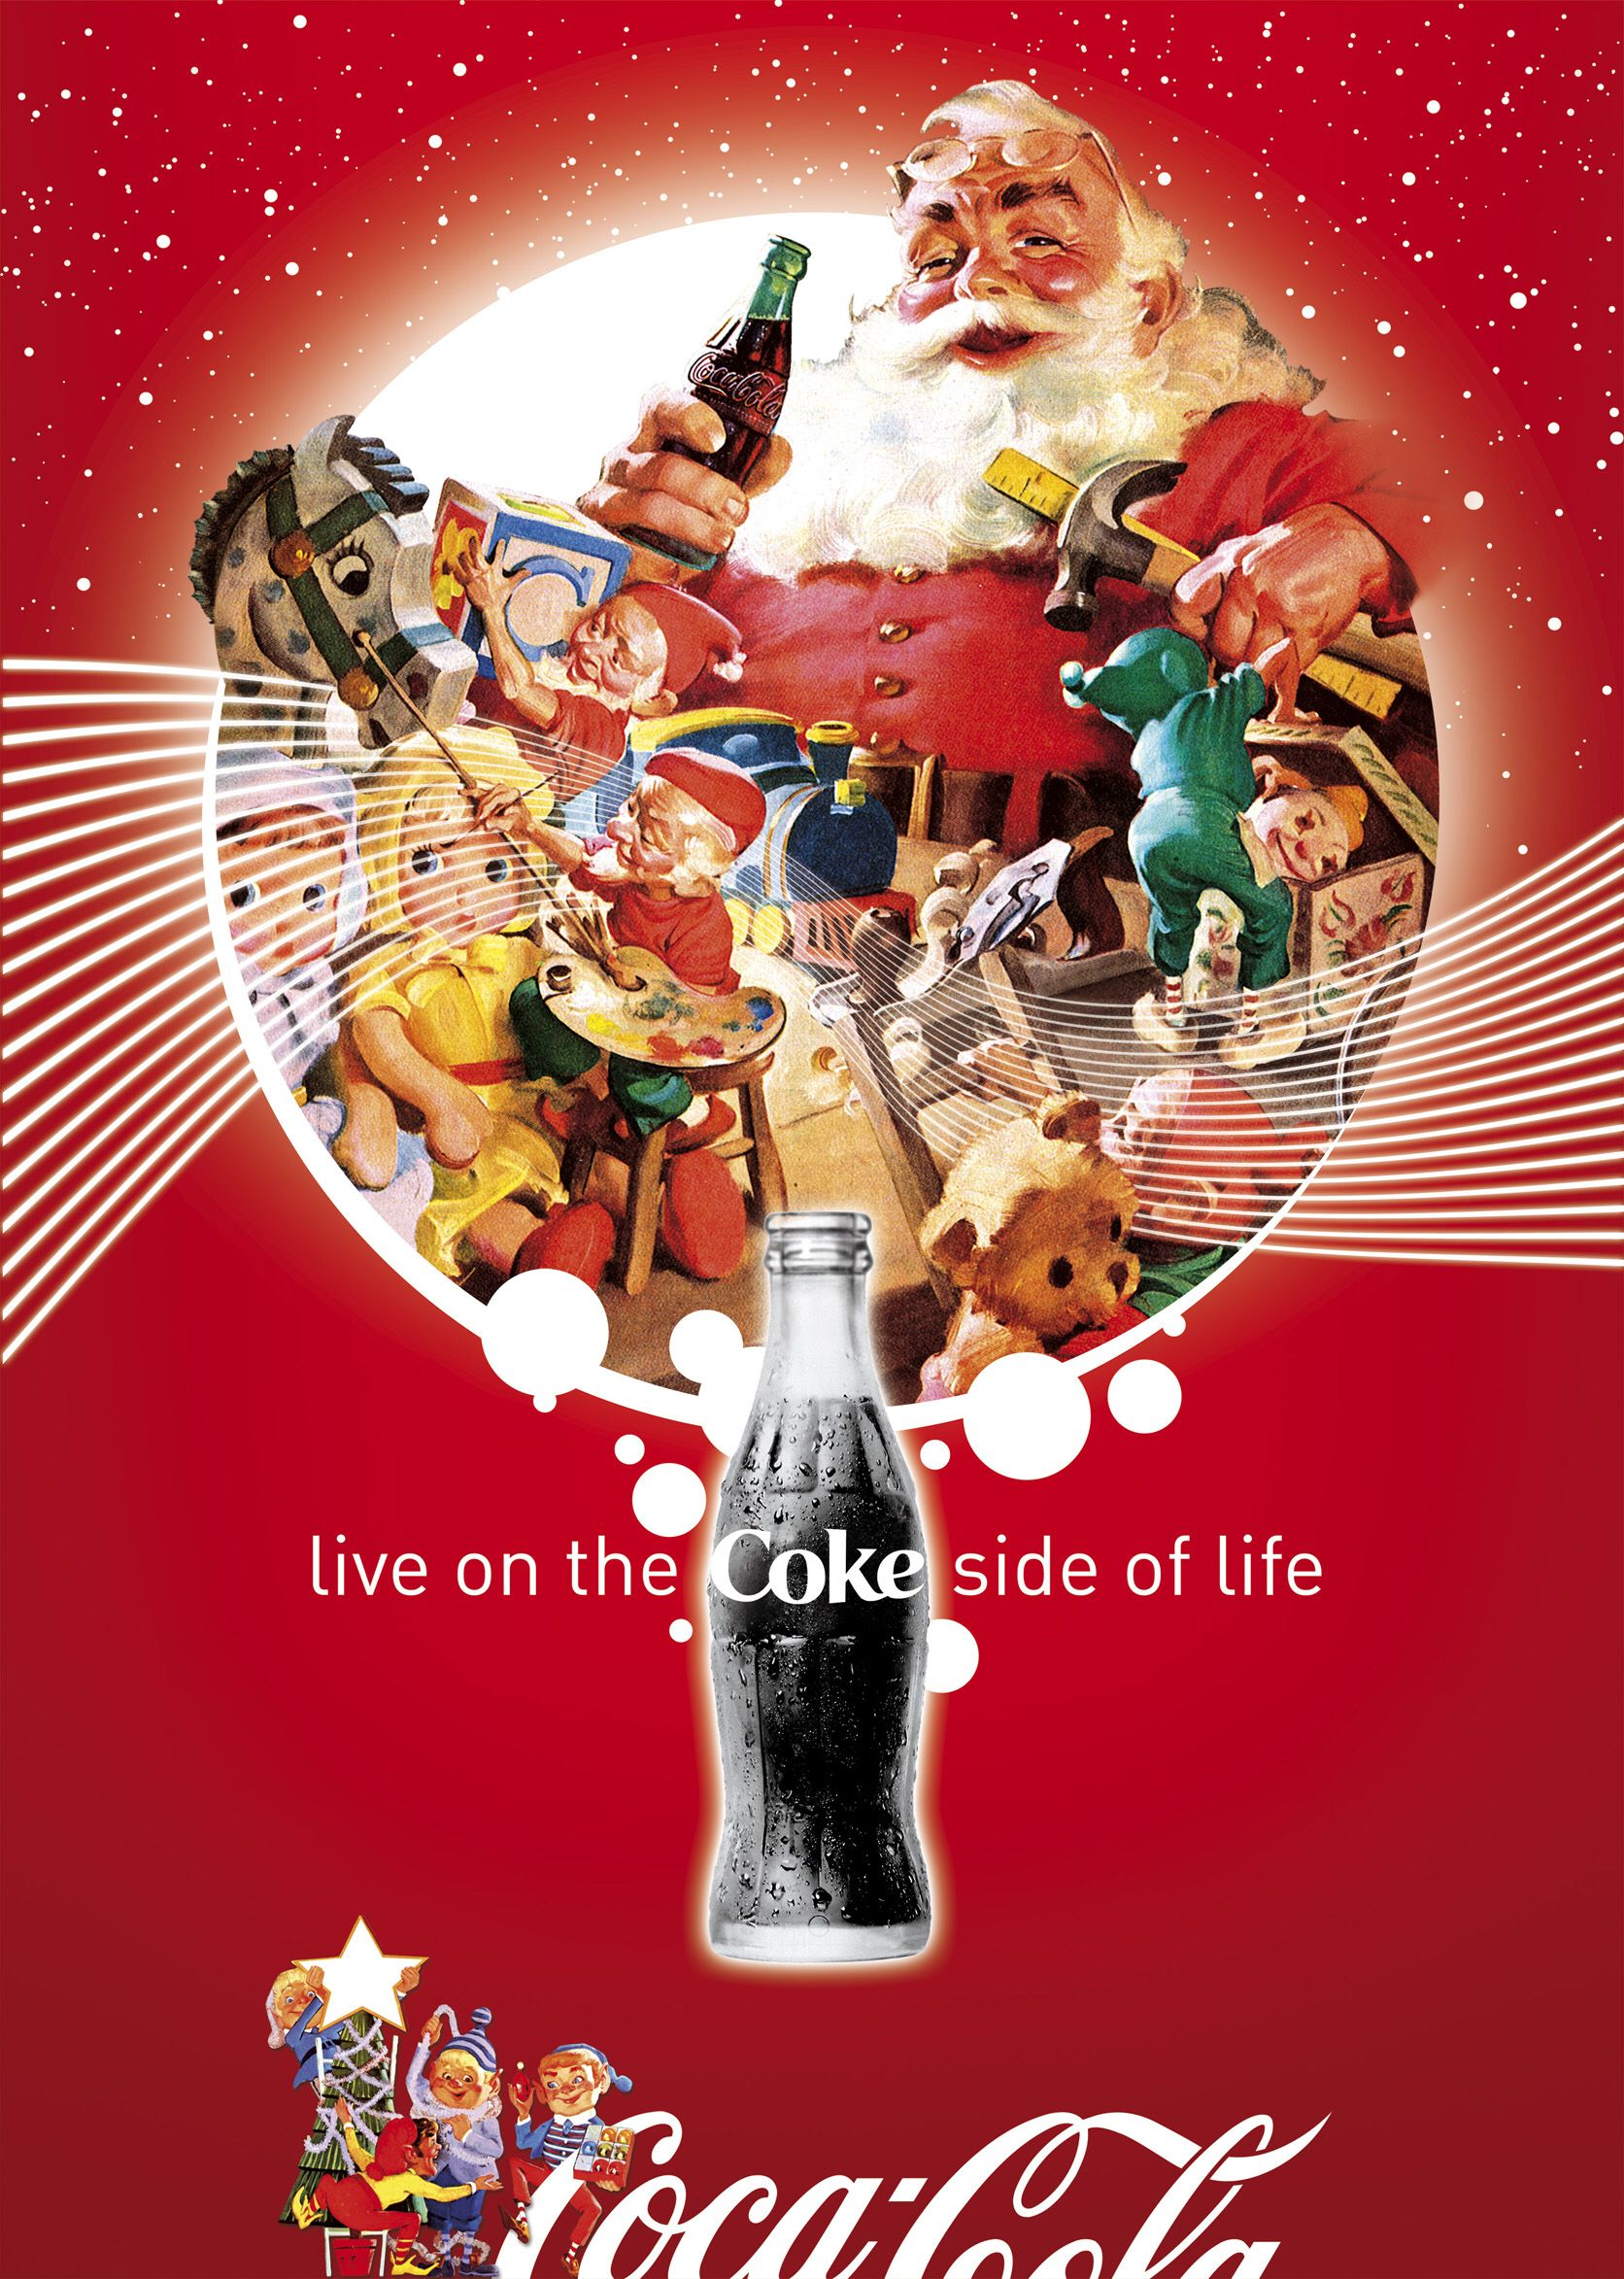 Pin On A Coca Cola Christmas